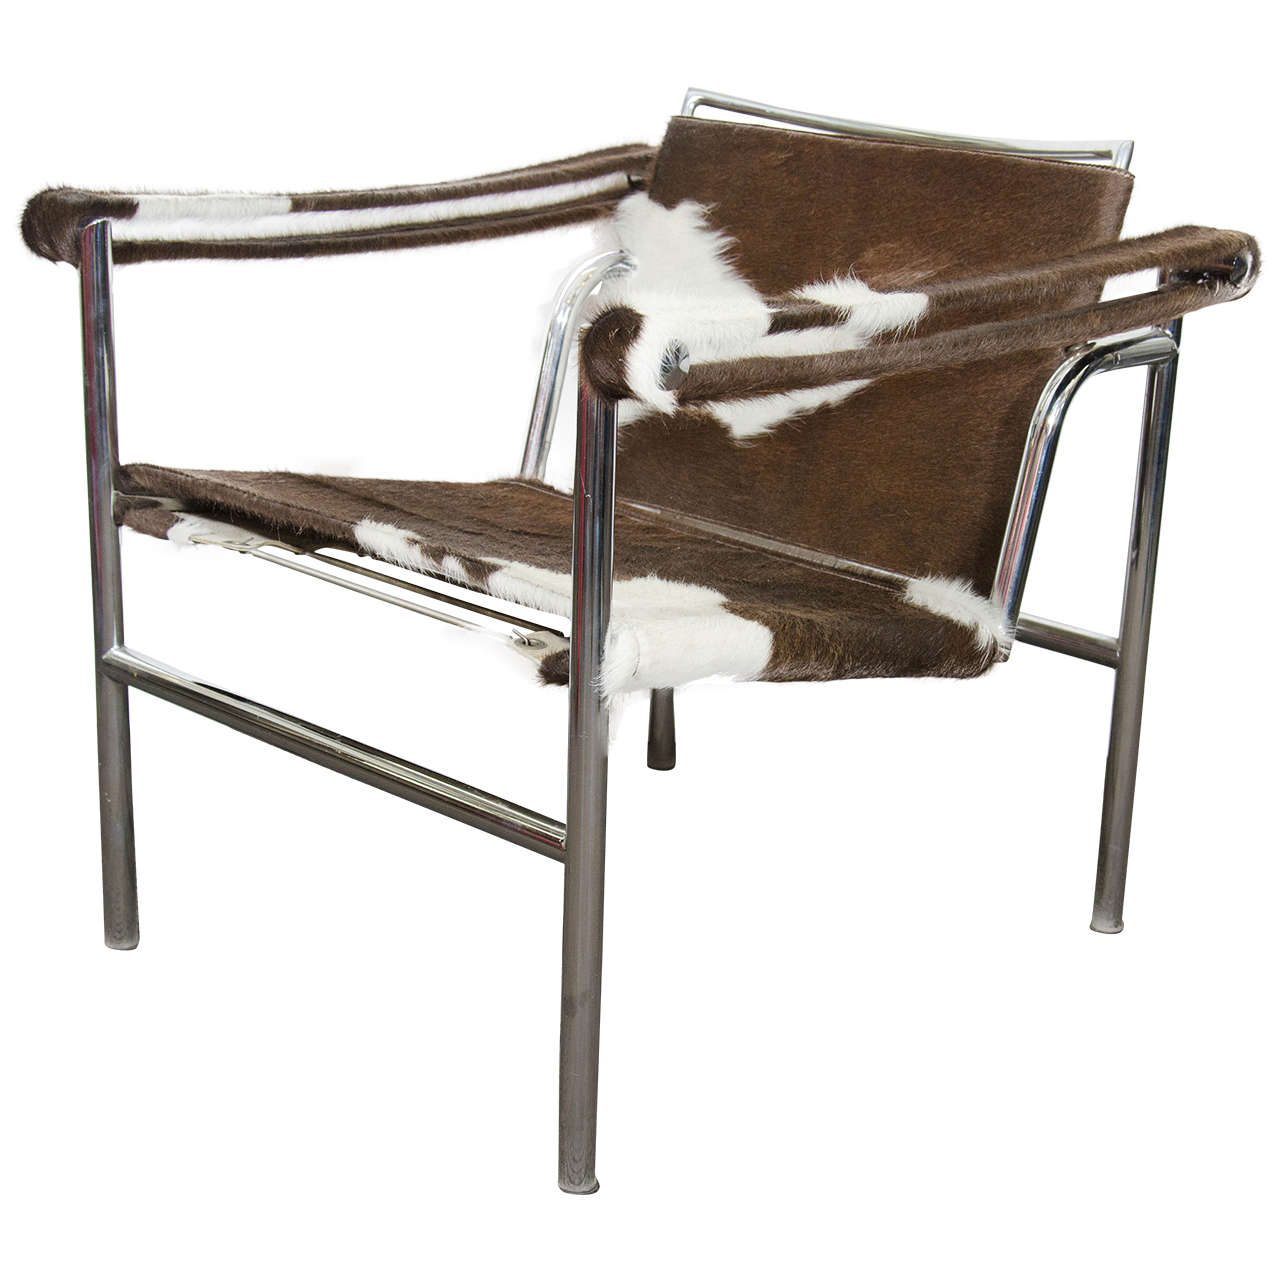 Le corbusier chair vintage - Midcentury Le Corbusier Sling Chair Newly Reupholstered In Hide